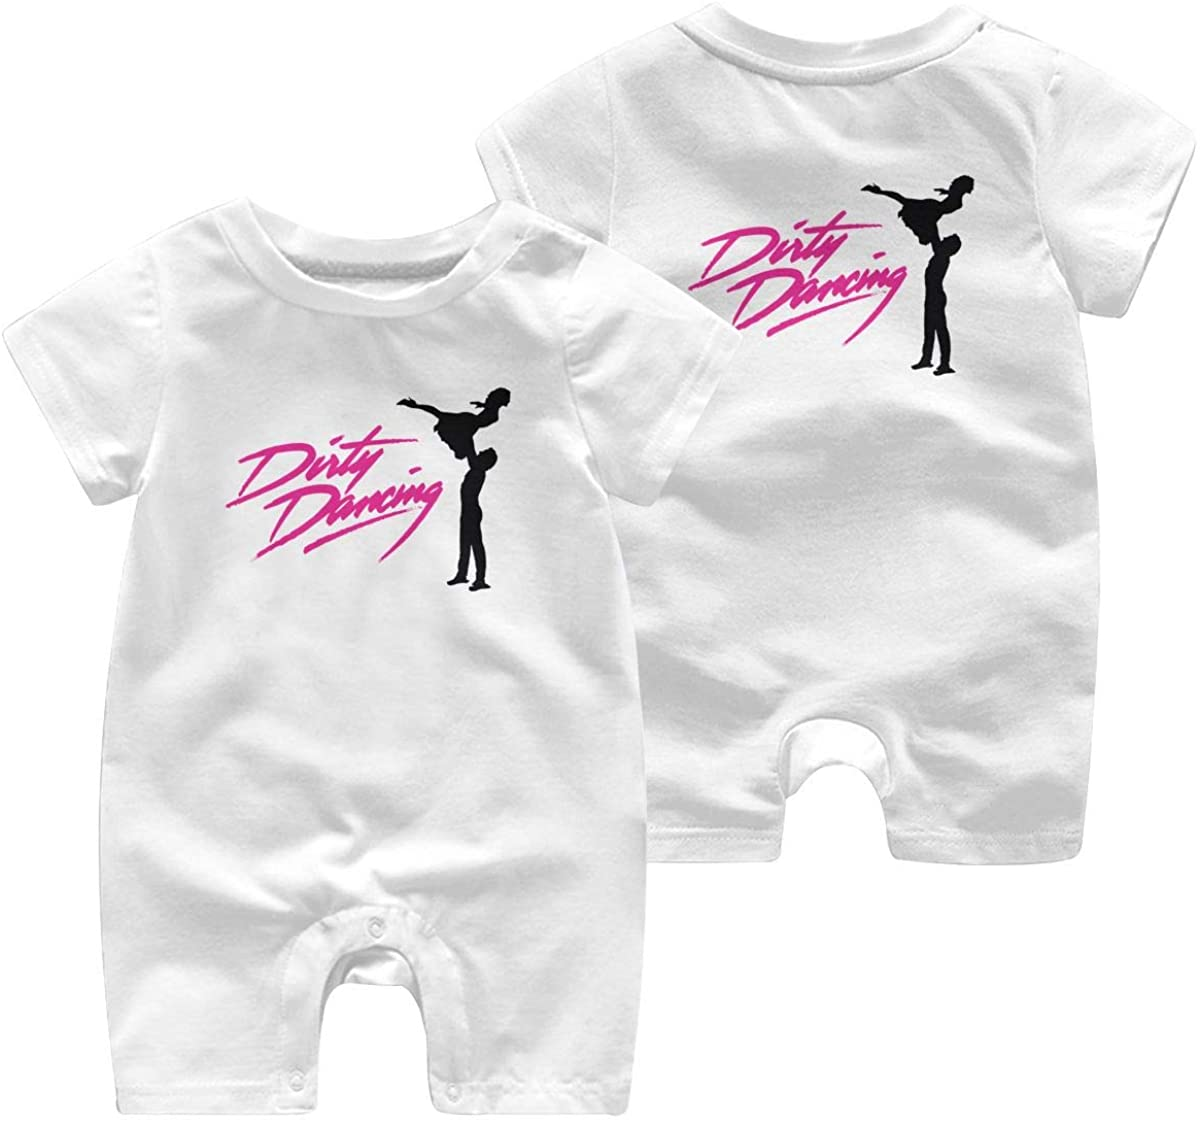 Qwtykeertyi Dirty Dancing Comfortable Baby Short Sleeve Jumpsuit Kid Baby Pajama Sleeper Cotton Romper